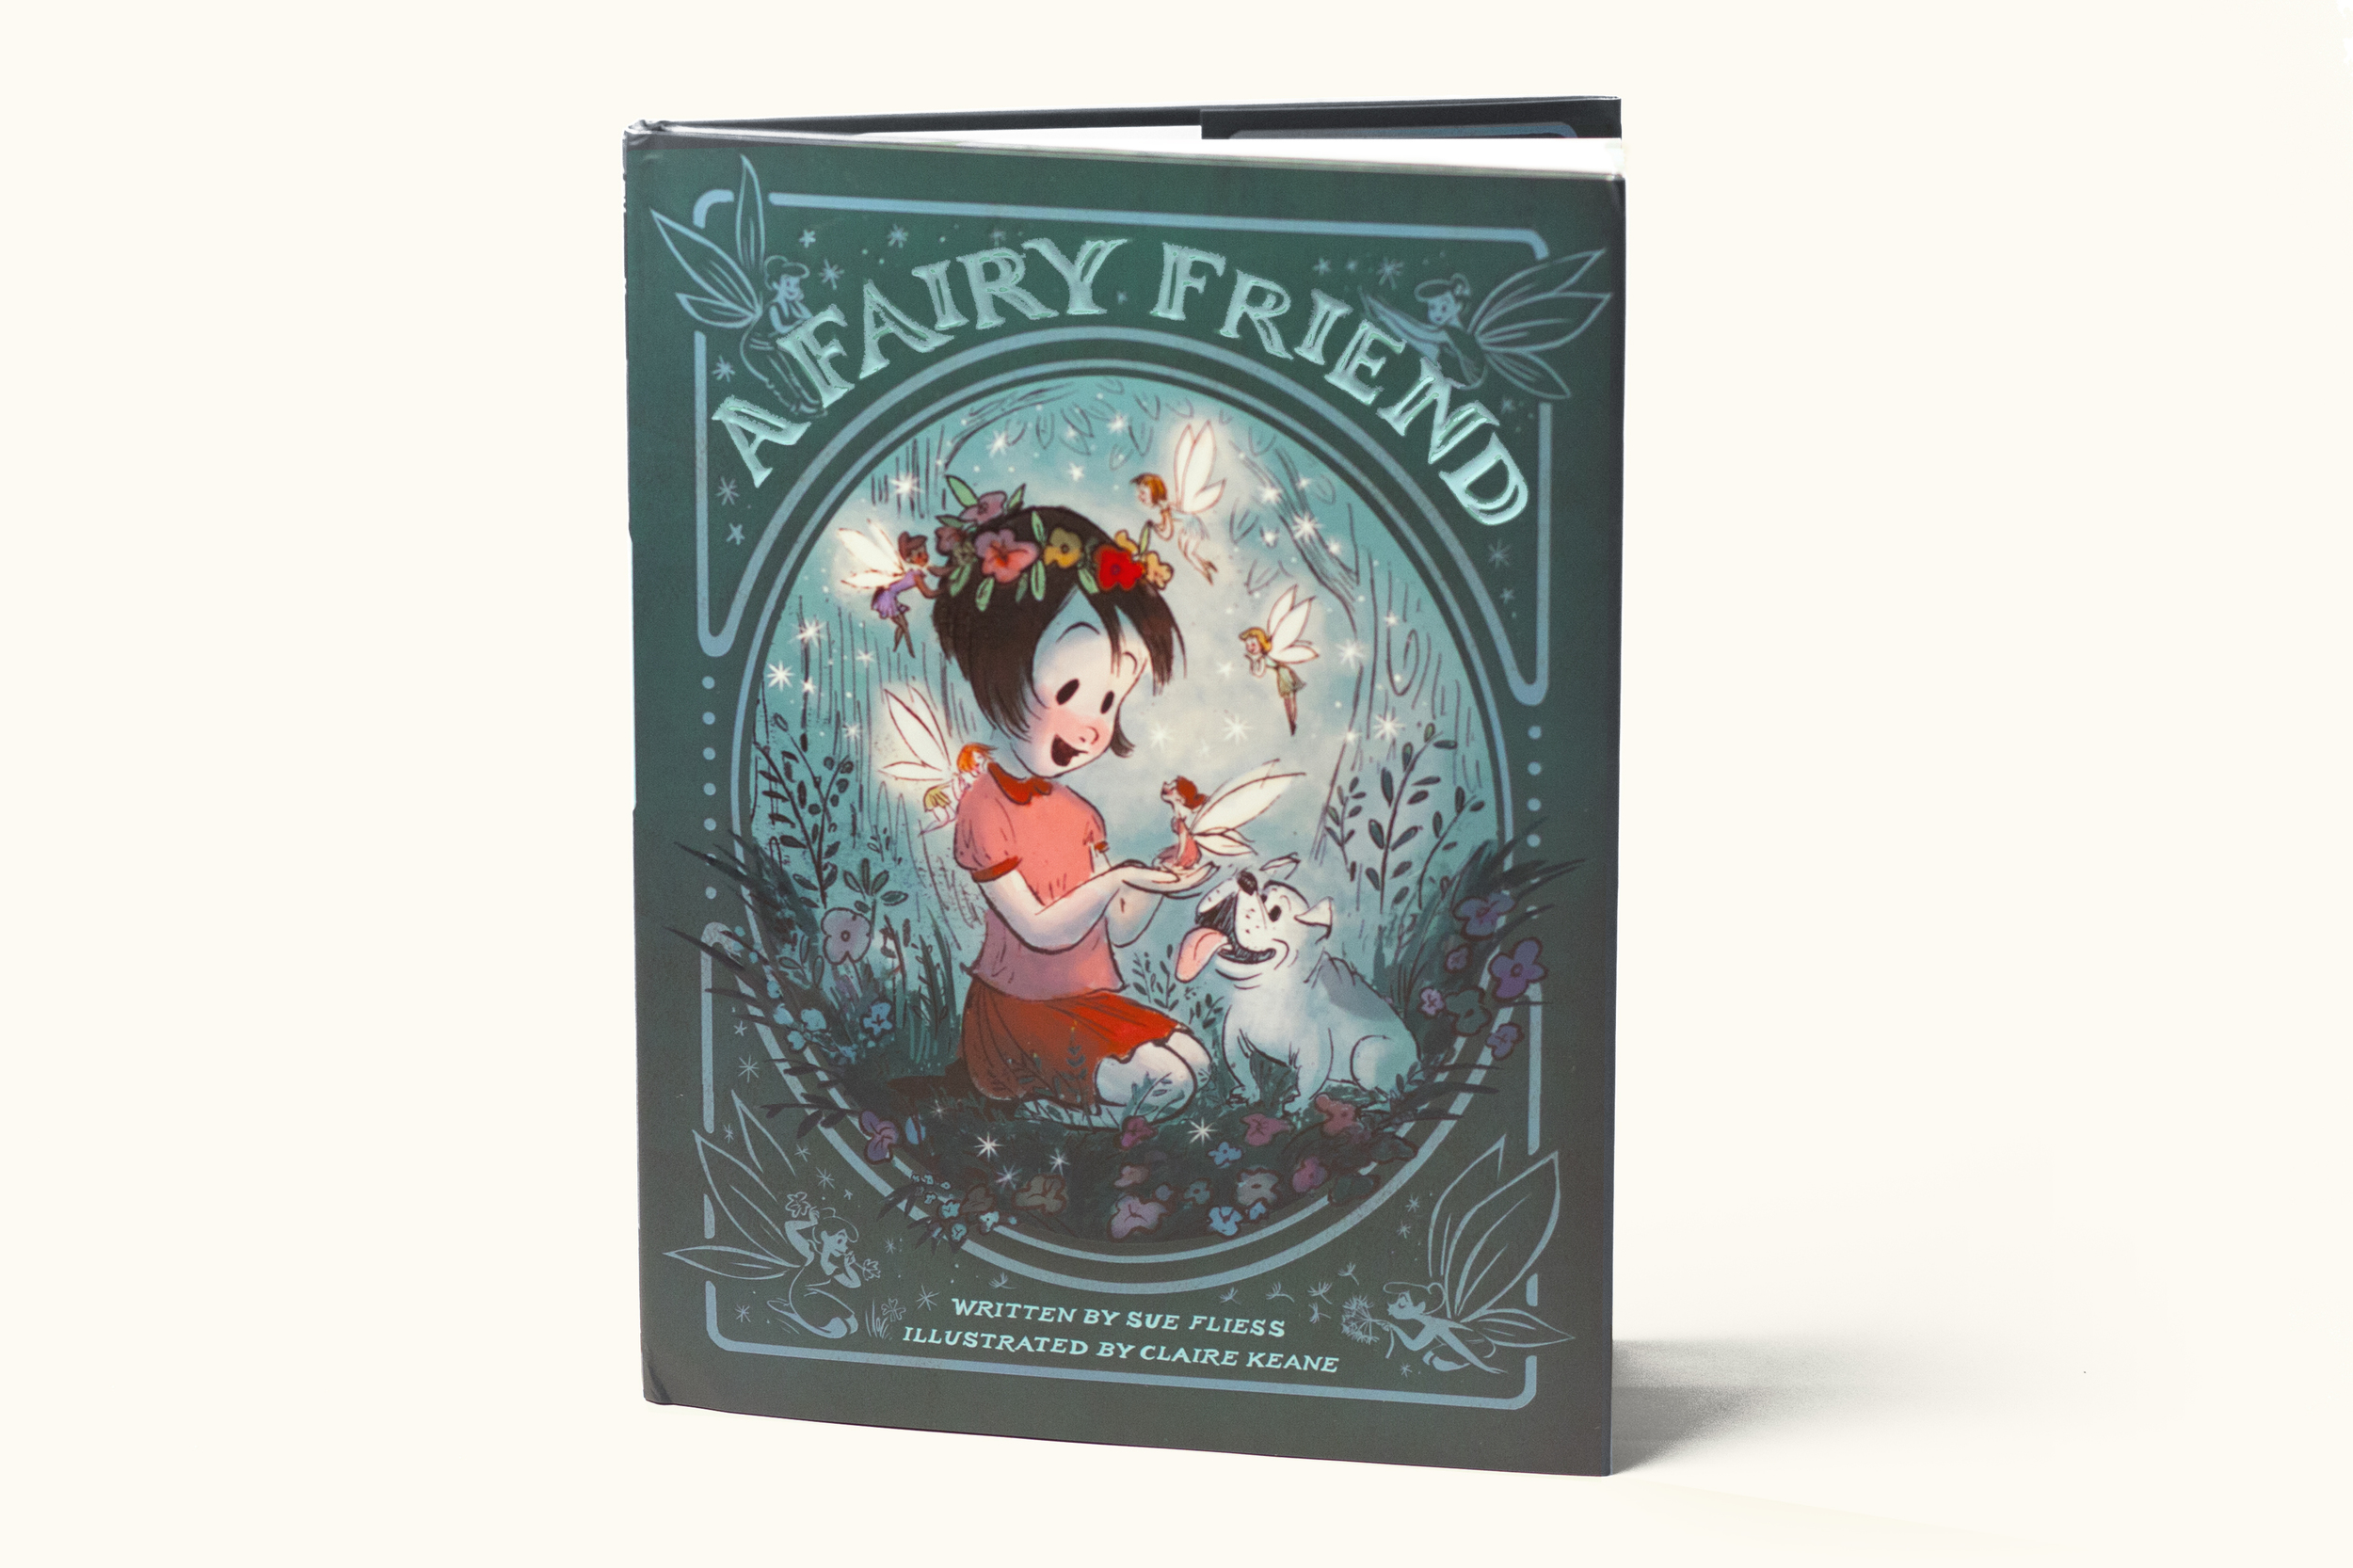 A Fairy Friend    Written by Sue Fliess, Illustrated by Claire Keane (Holt/MacMillan, 2016)